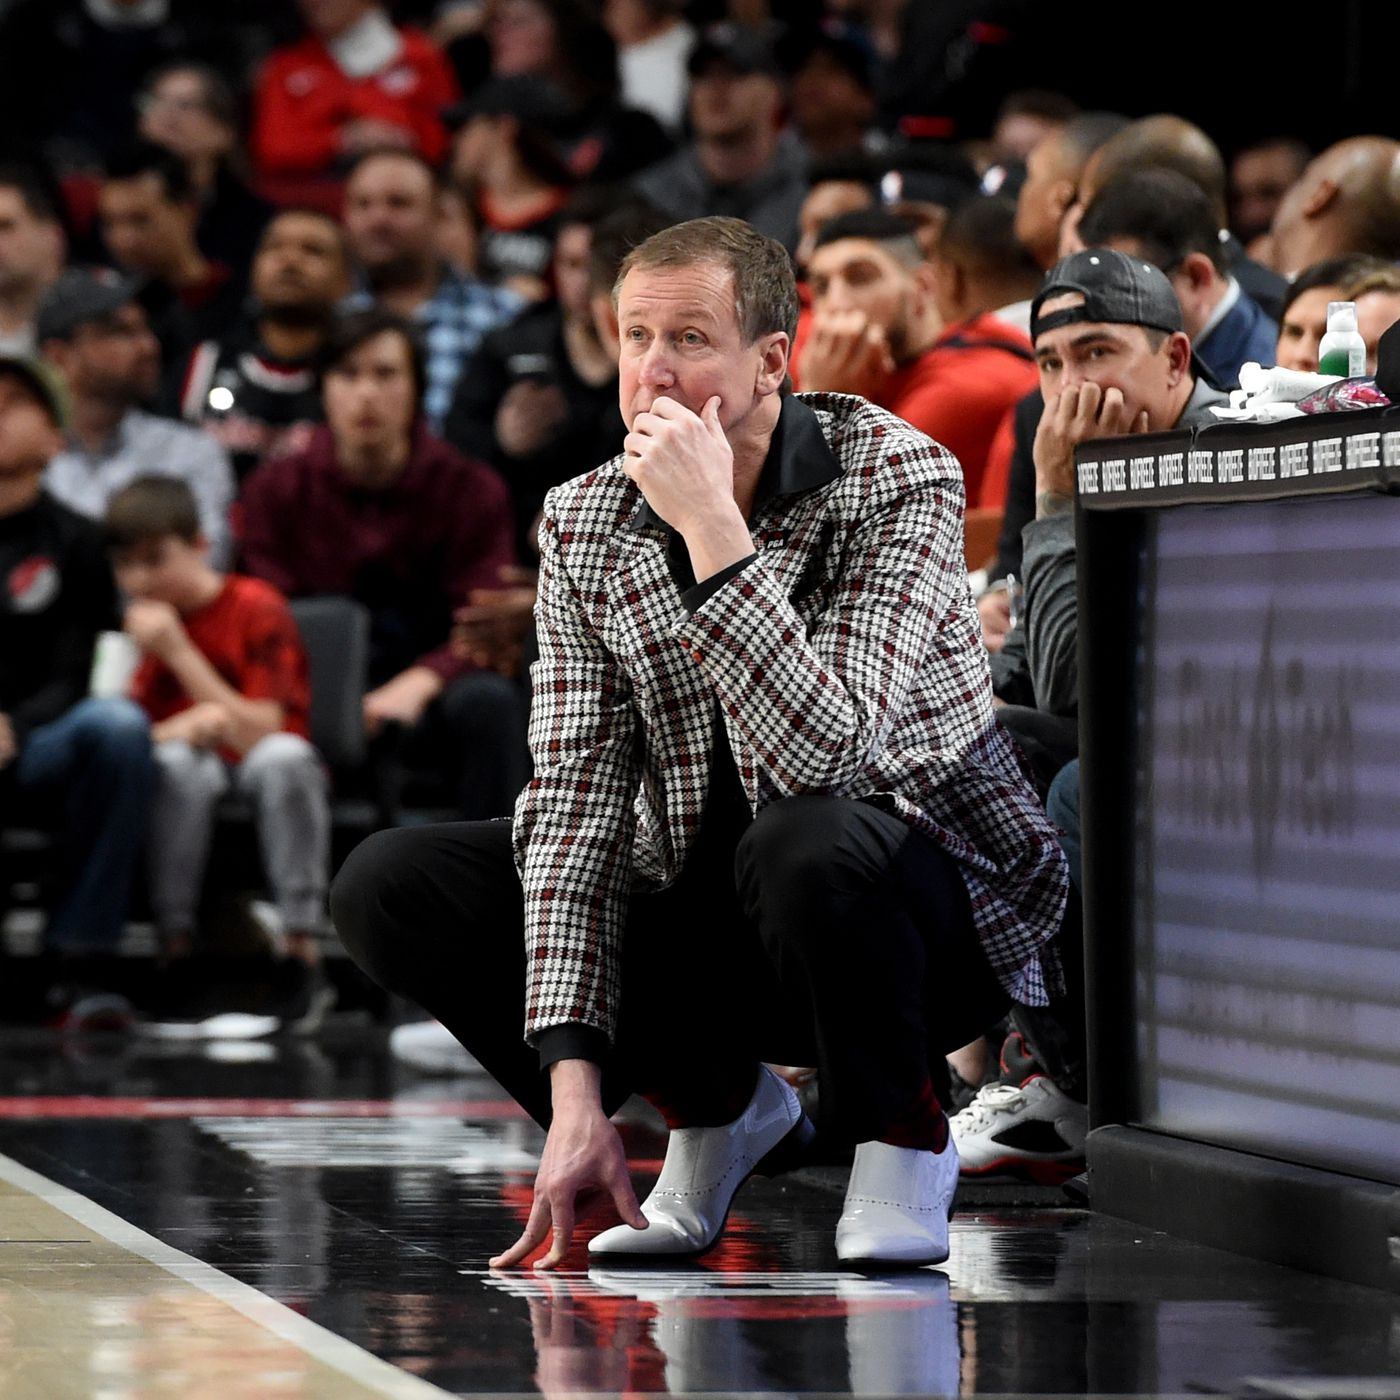 blazersedge.com - Eric Griffith - Terry Stotts was almost a dentist?!